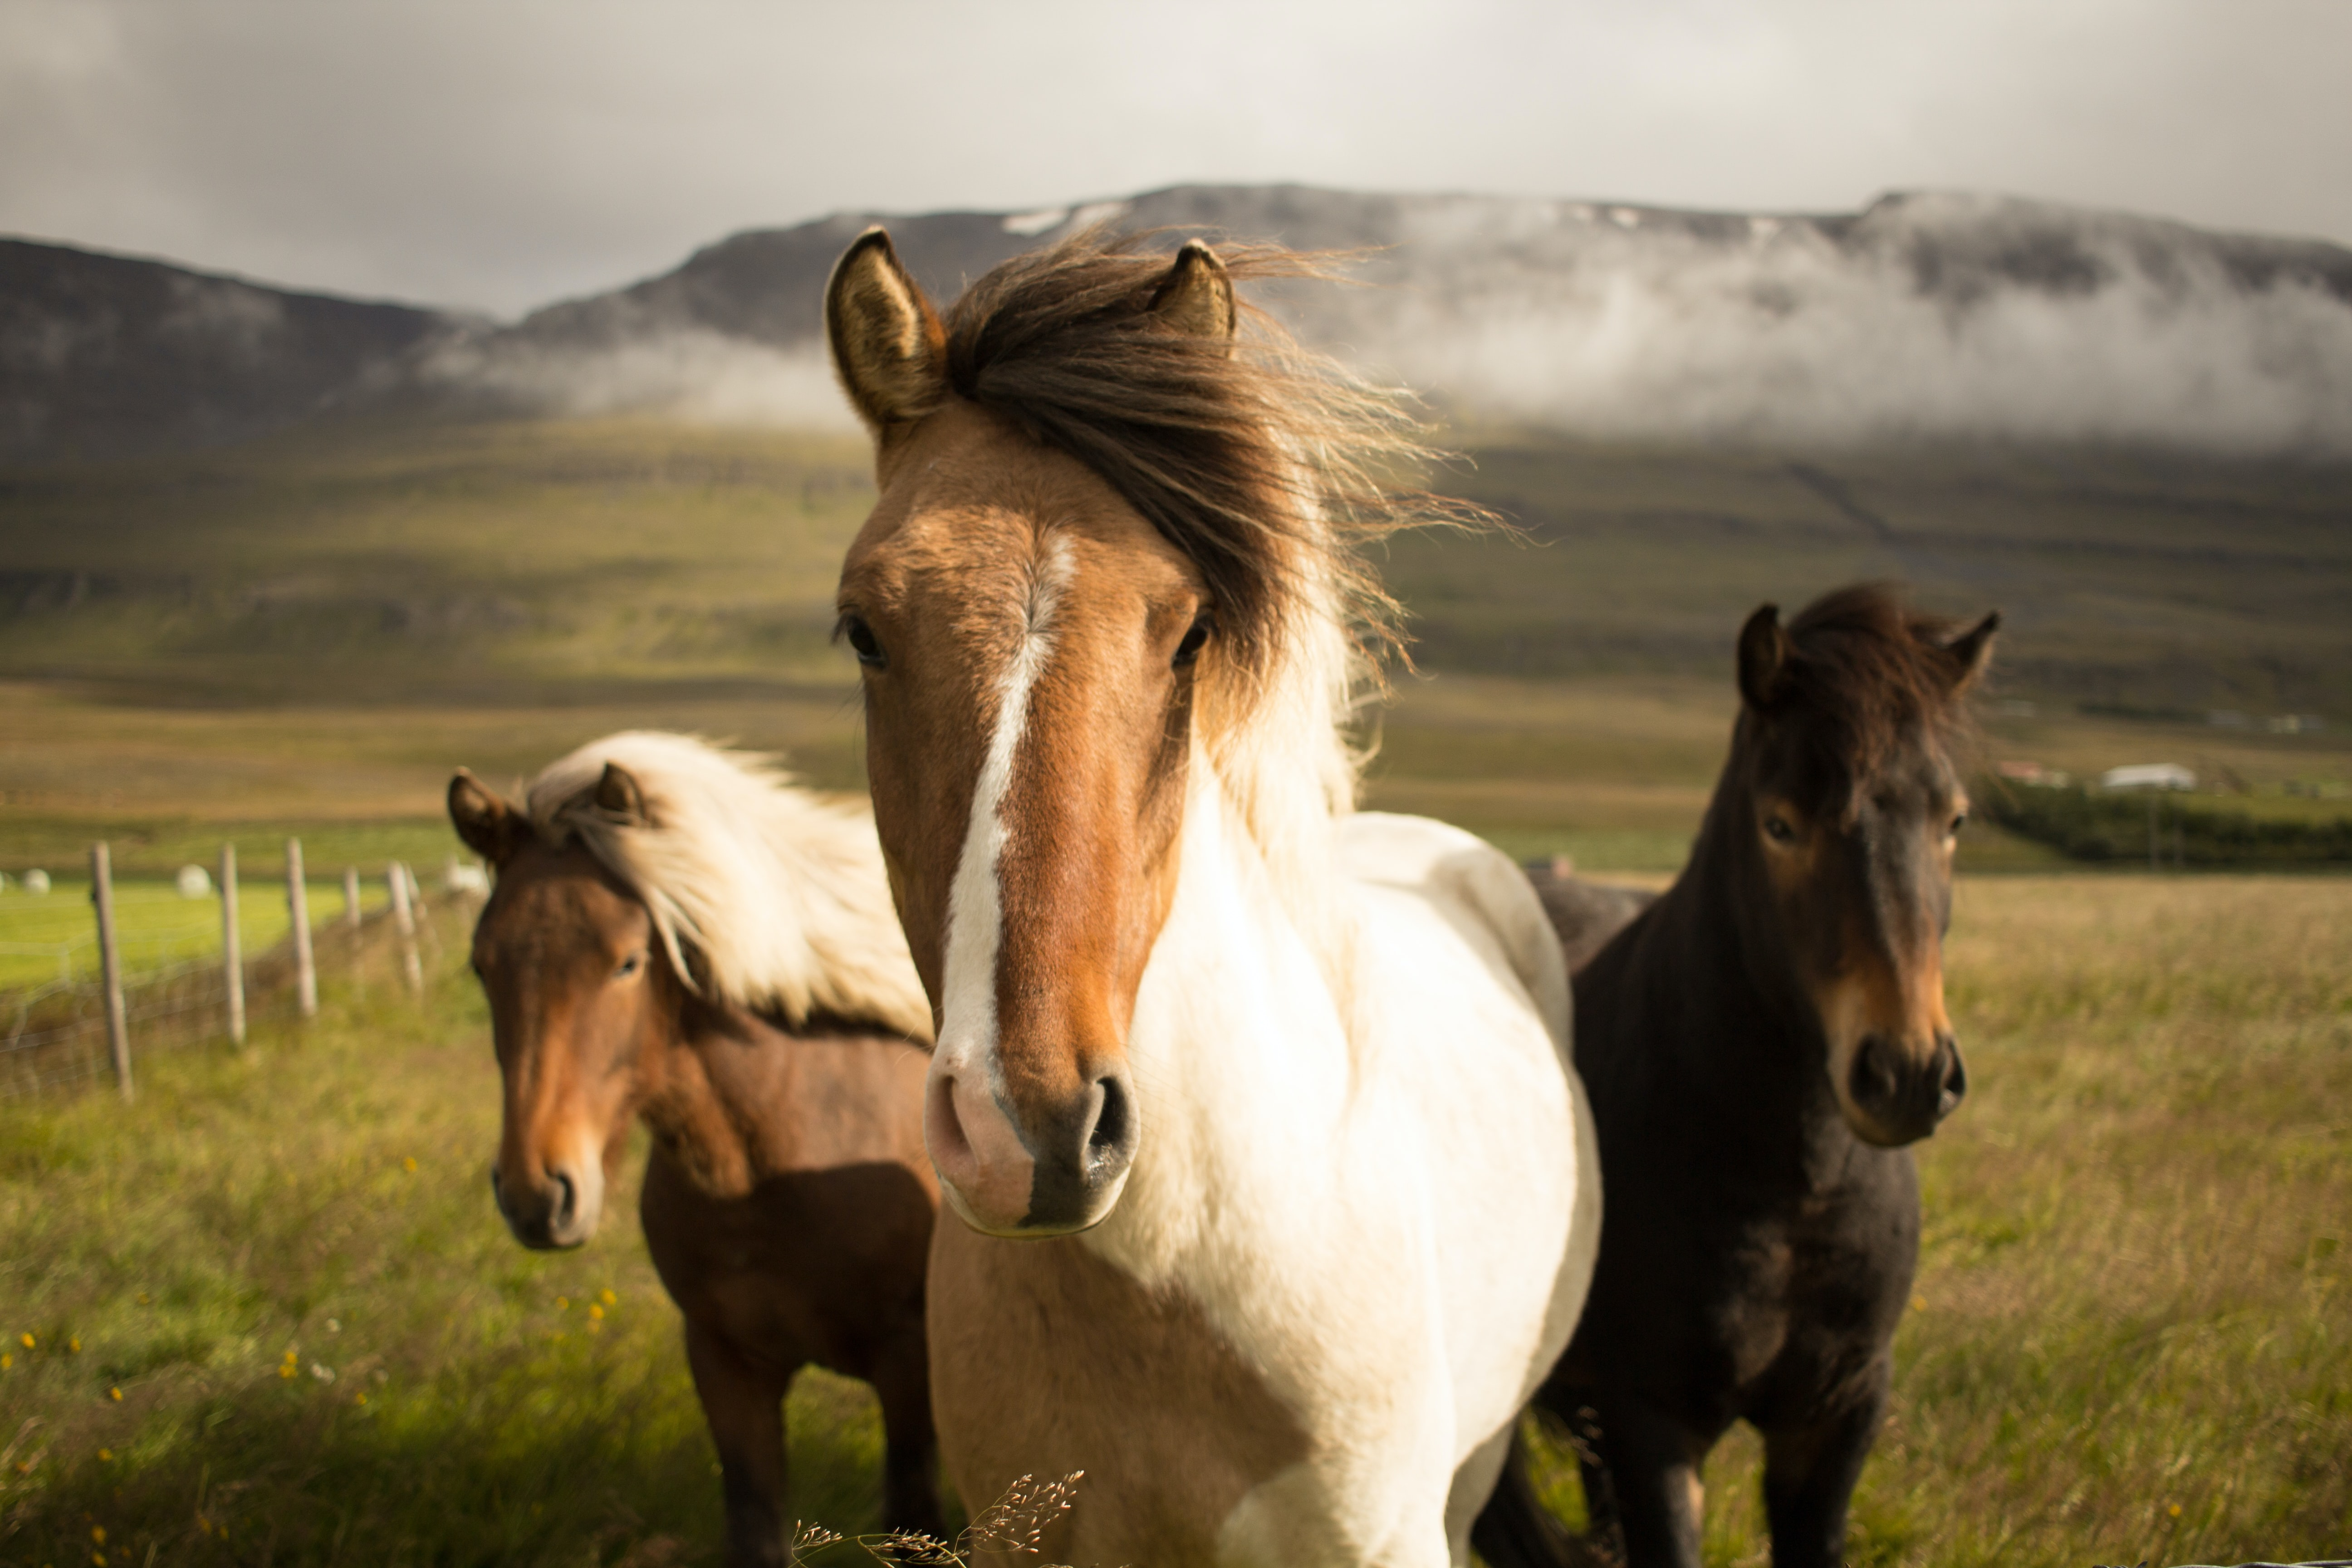 Three horses standing close to each other and looking at the camera